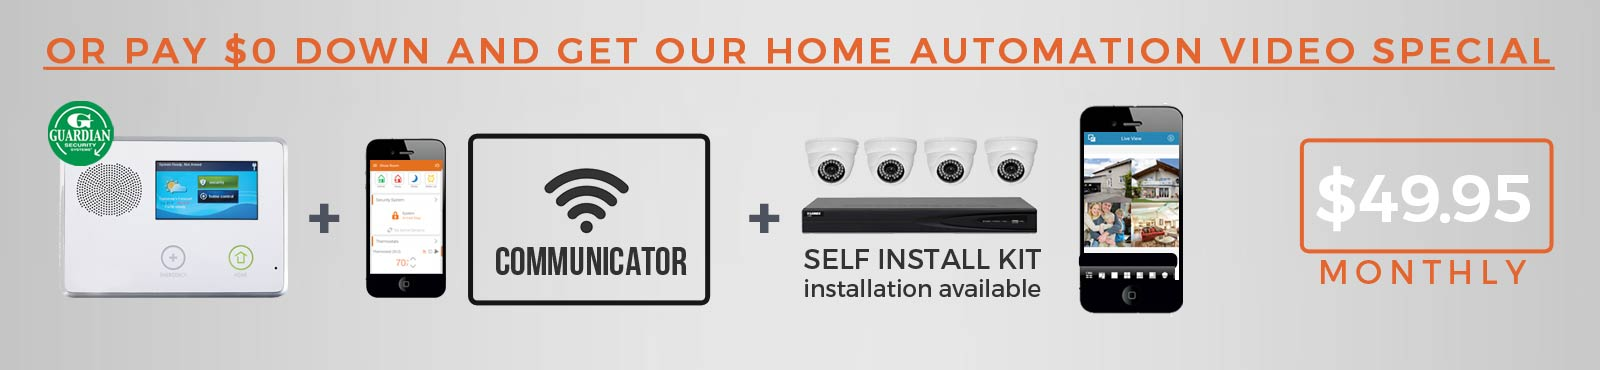 security-cameras-alarm-special